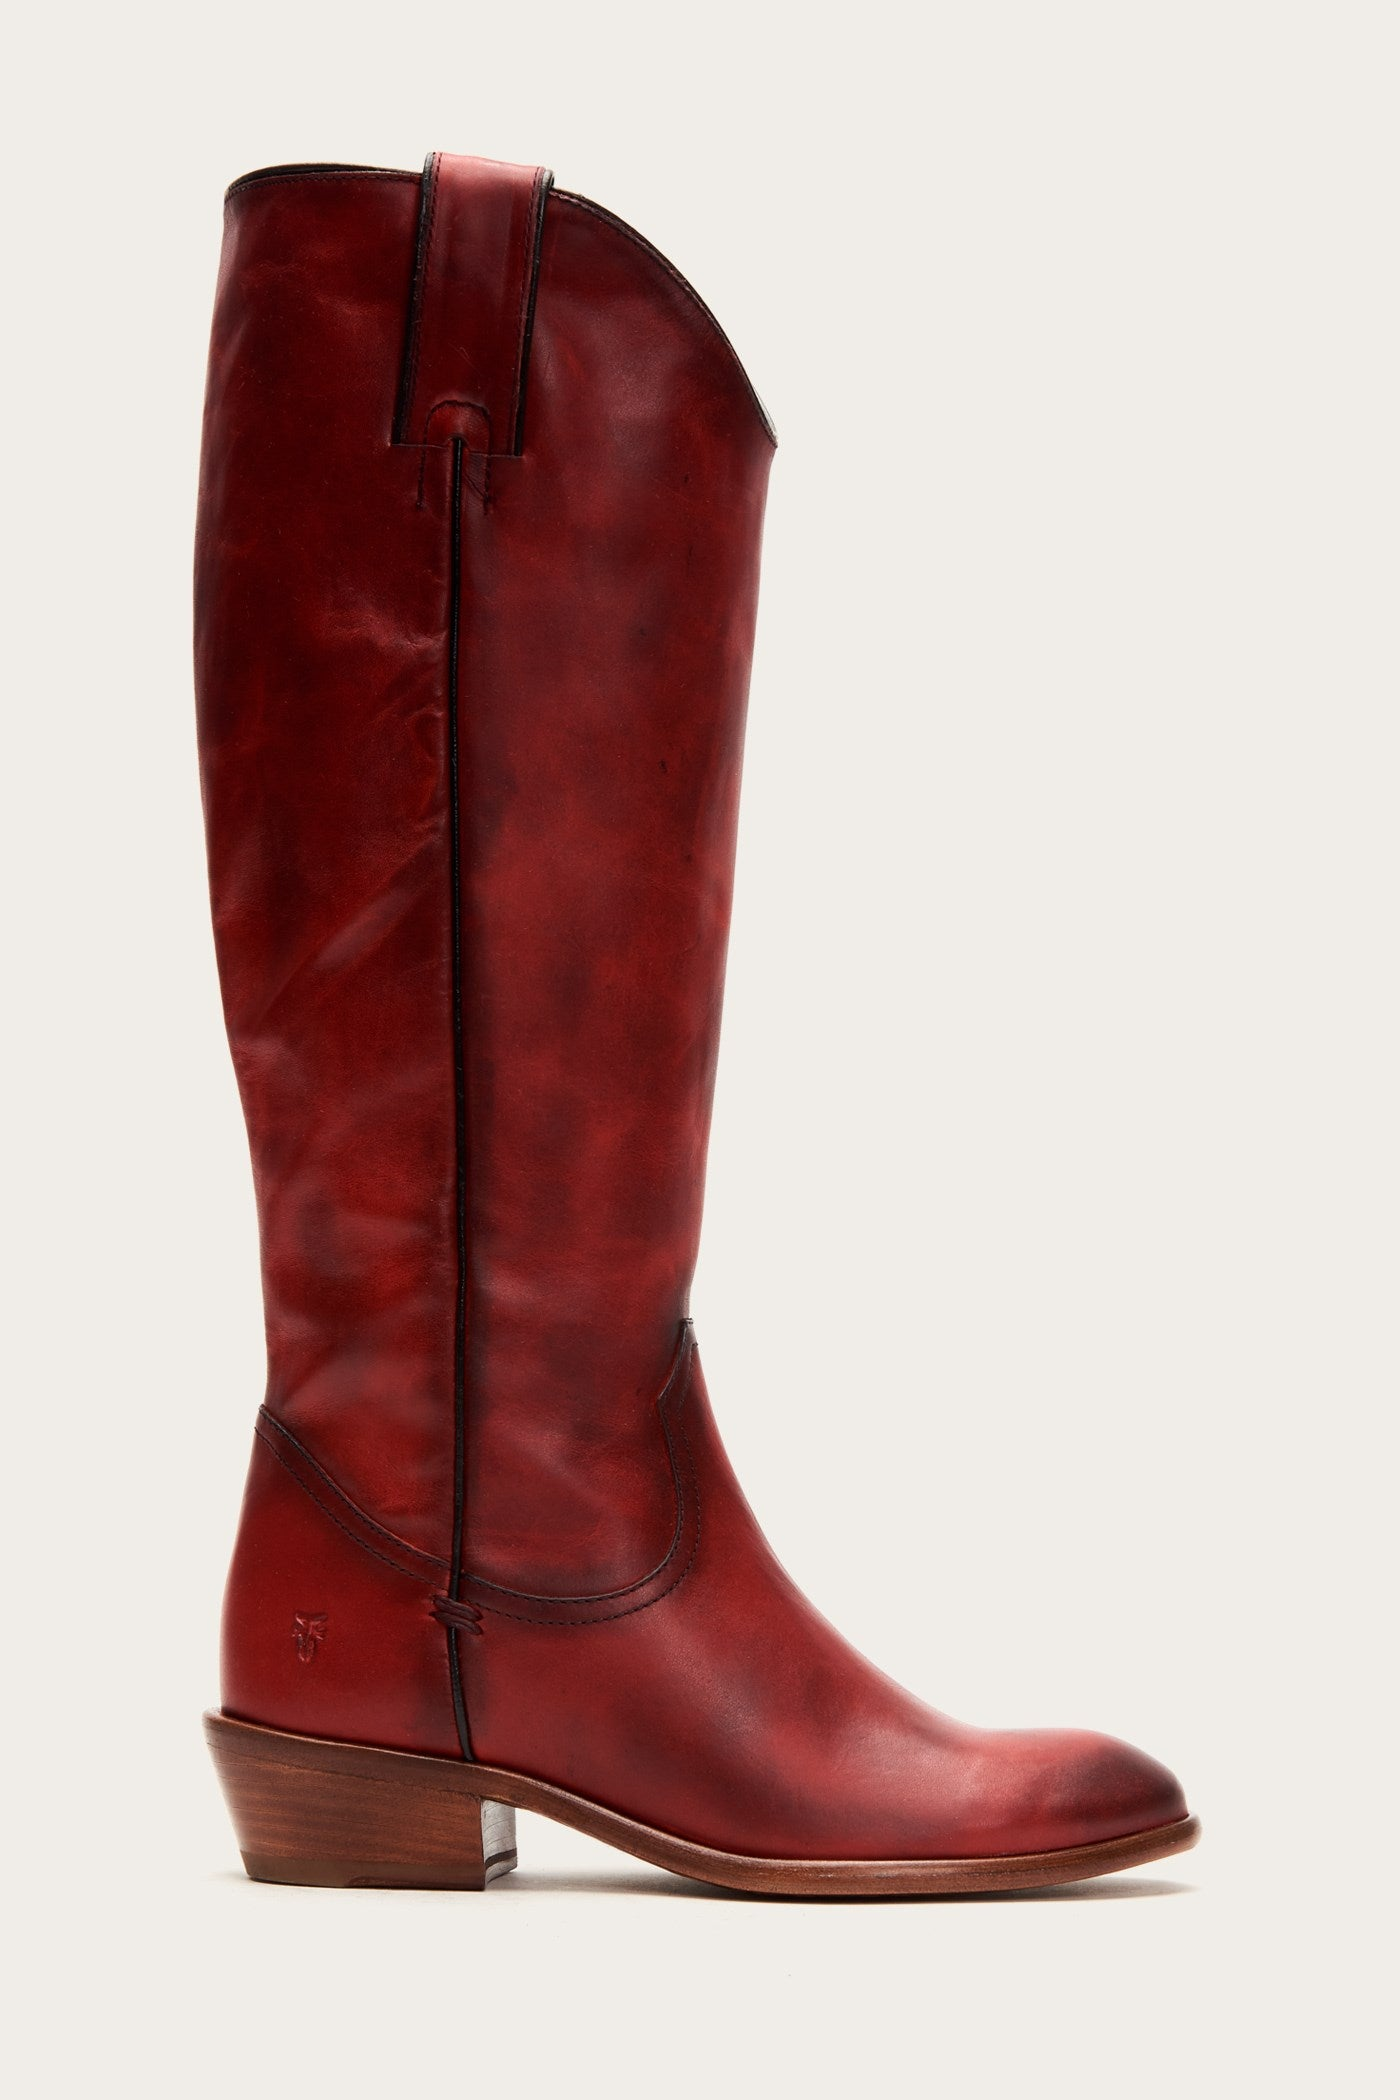 new arrivals 491ca 9590e Leather Boots, Shoes & Bags   FRYE Since 1863